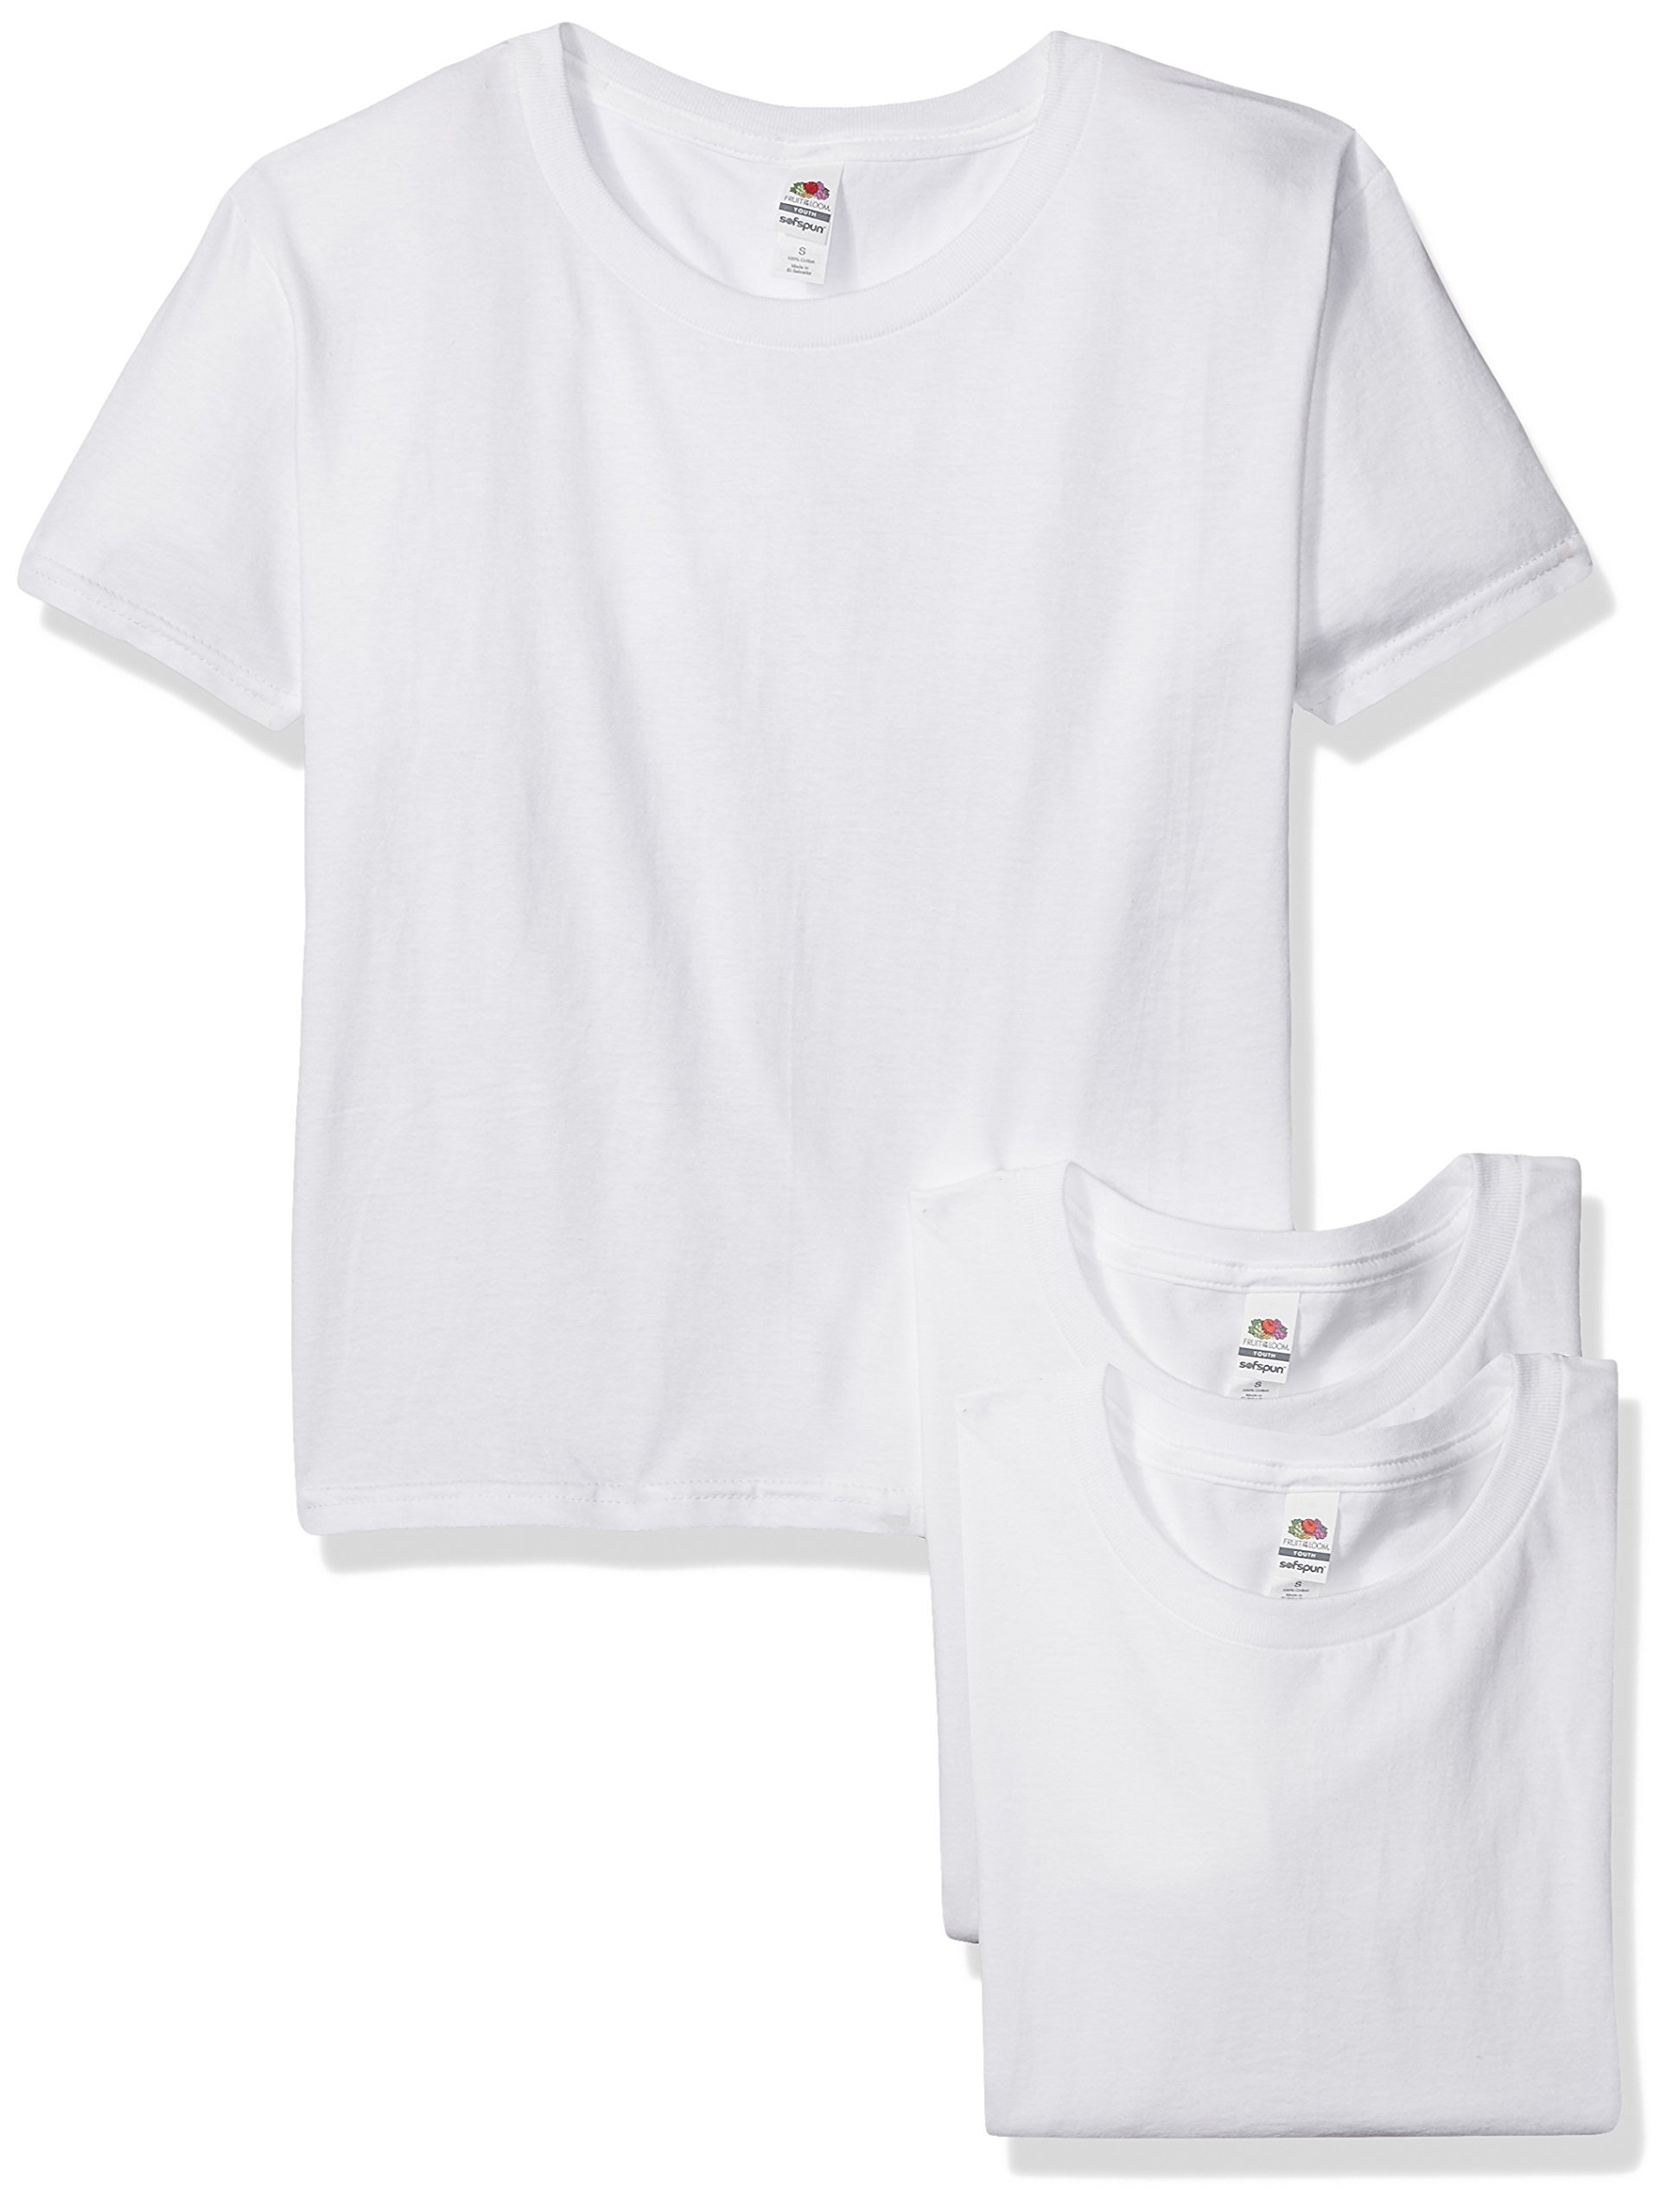 Fruit of the Loom Big Boys' Sofspun Youth T-Shirt (3-Pack),White,Large